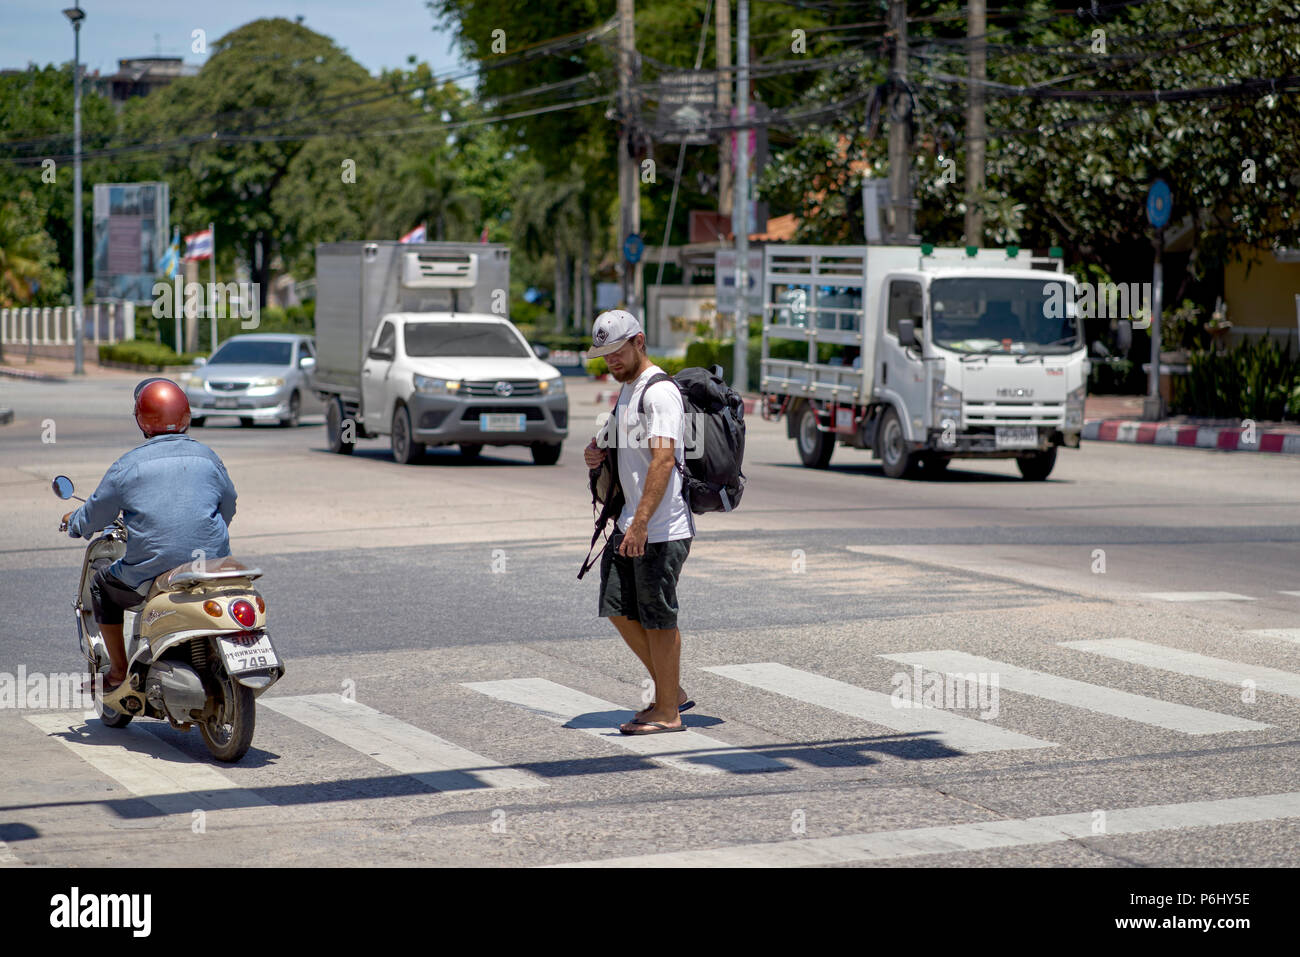 Man using the pedestrian crossing with motorcyclist ignoring his right of way which is common amongst Thai motorists. Thailand Southeast Asia - Stock Image